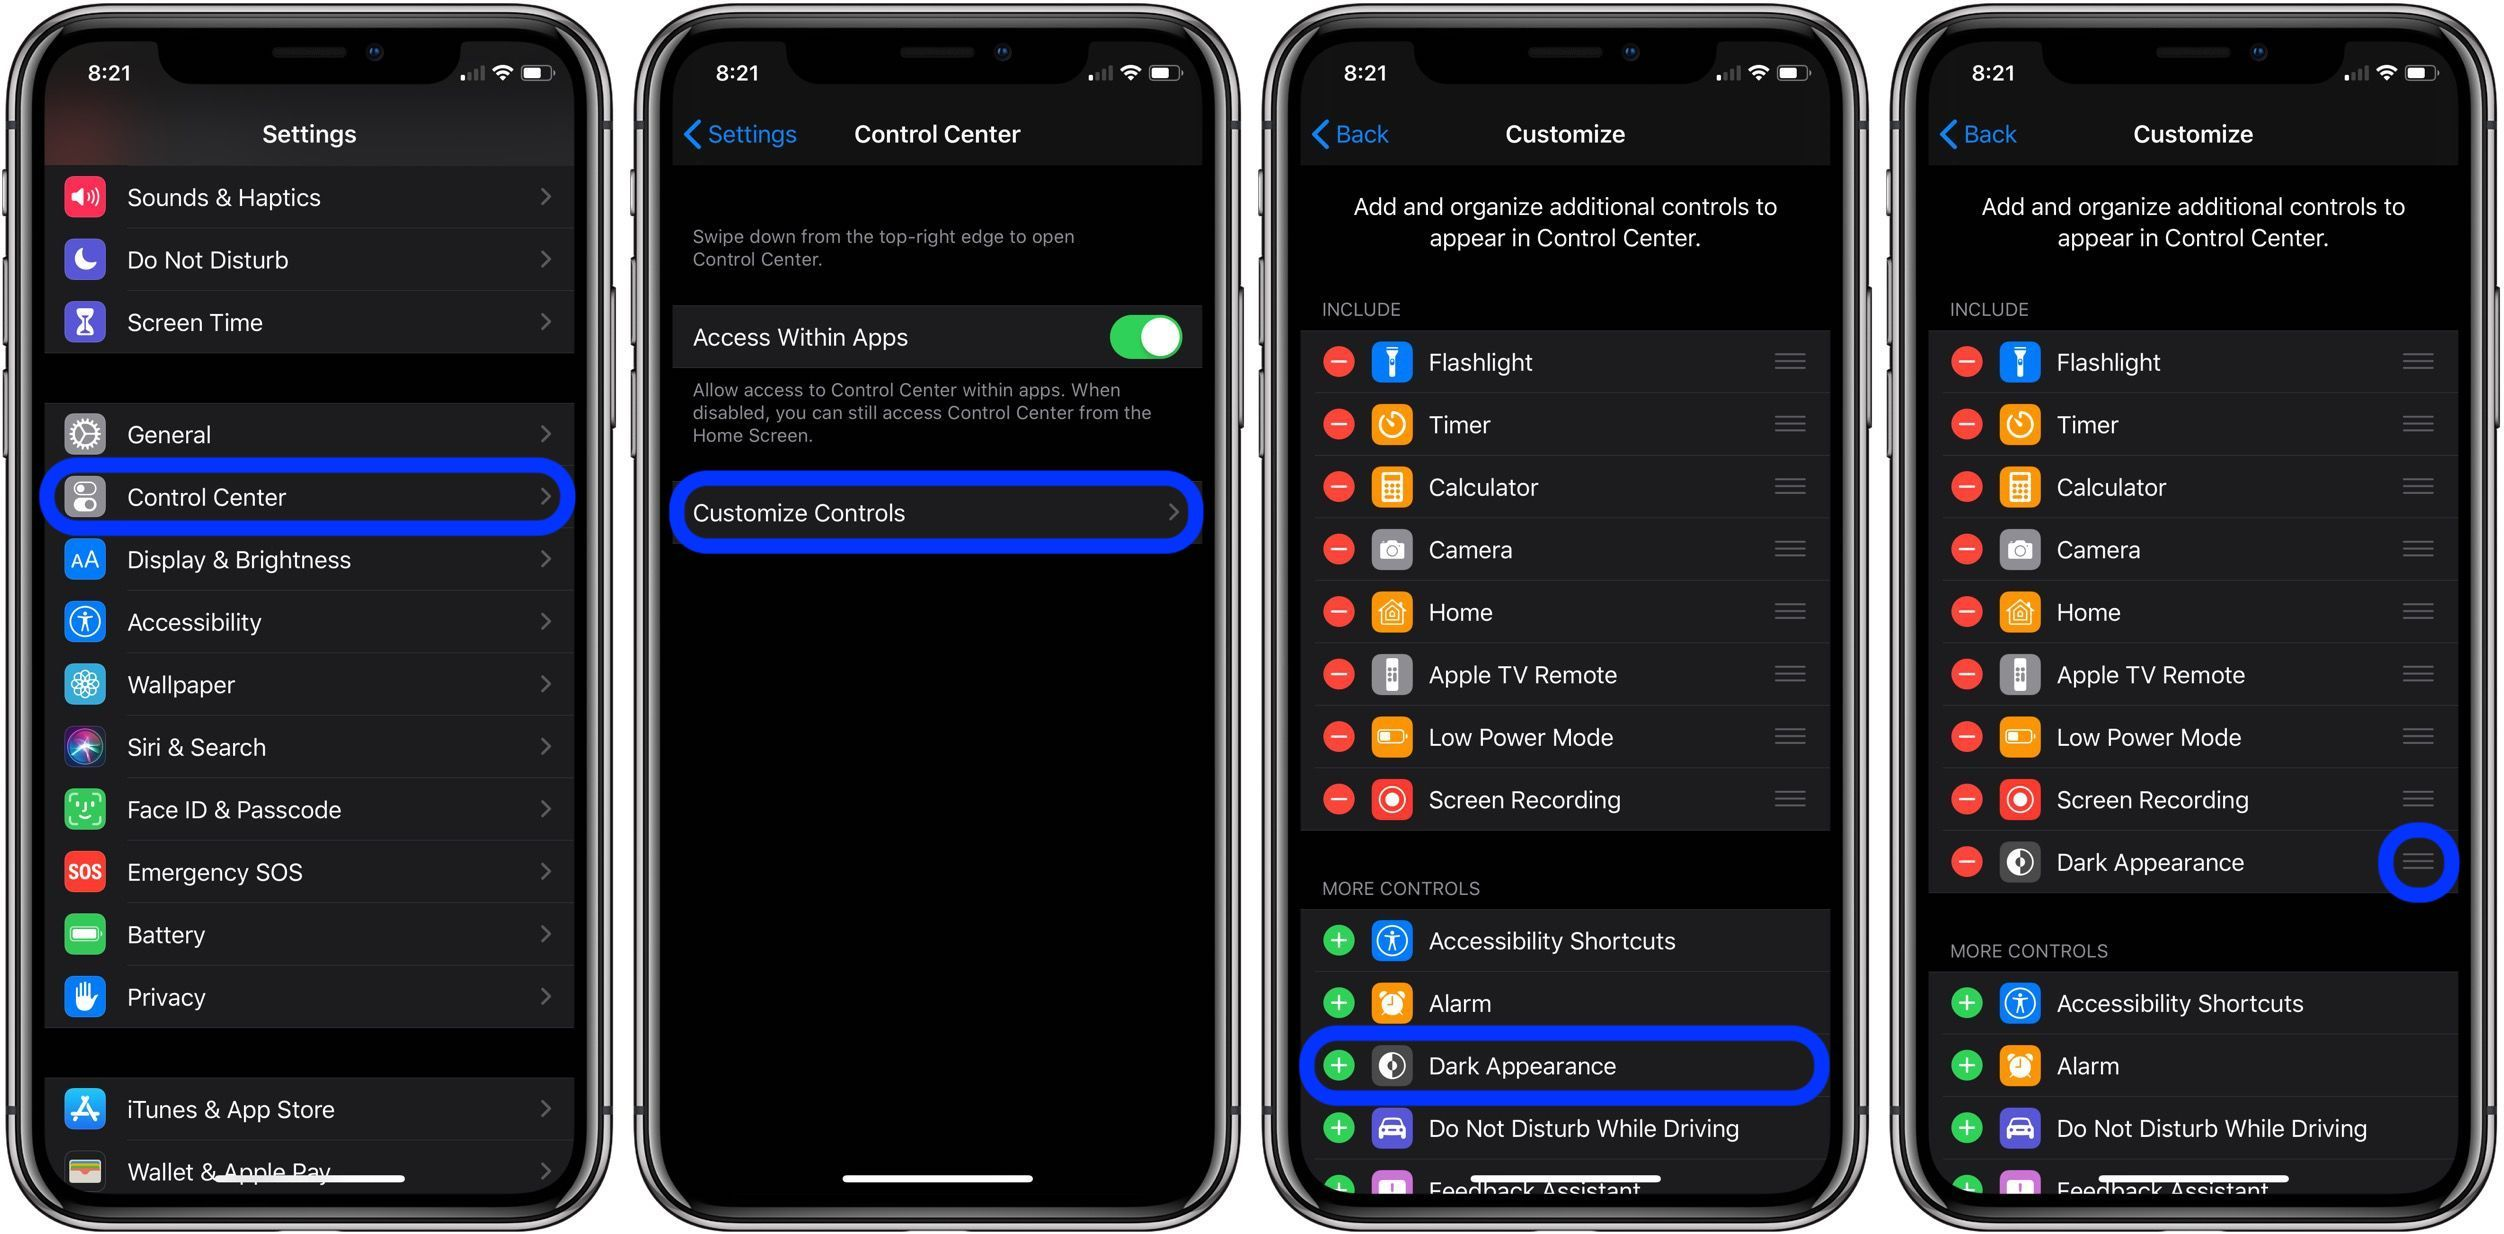 How to Turn On Dark Mode in iOS 13